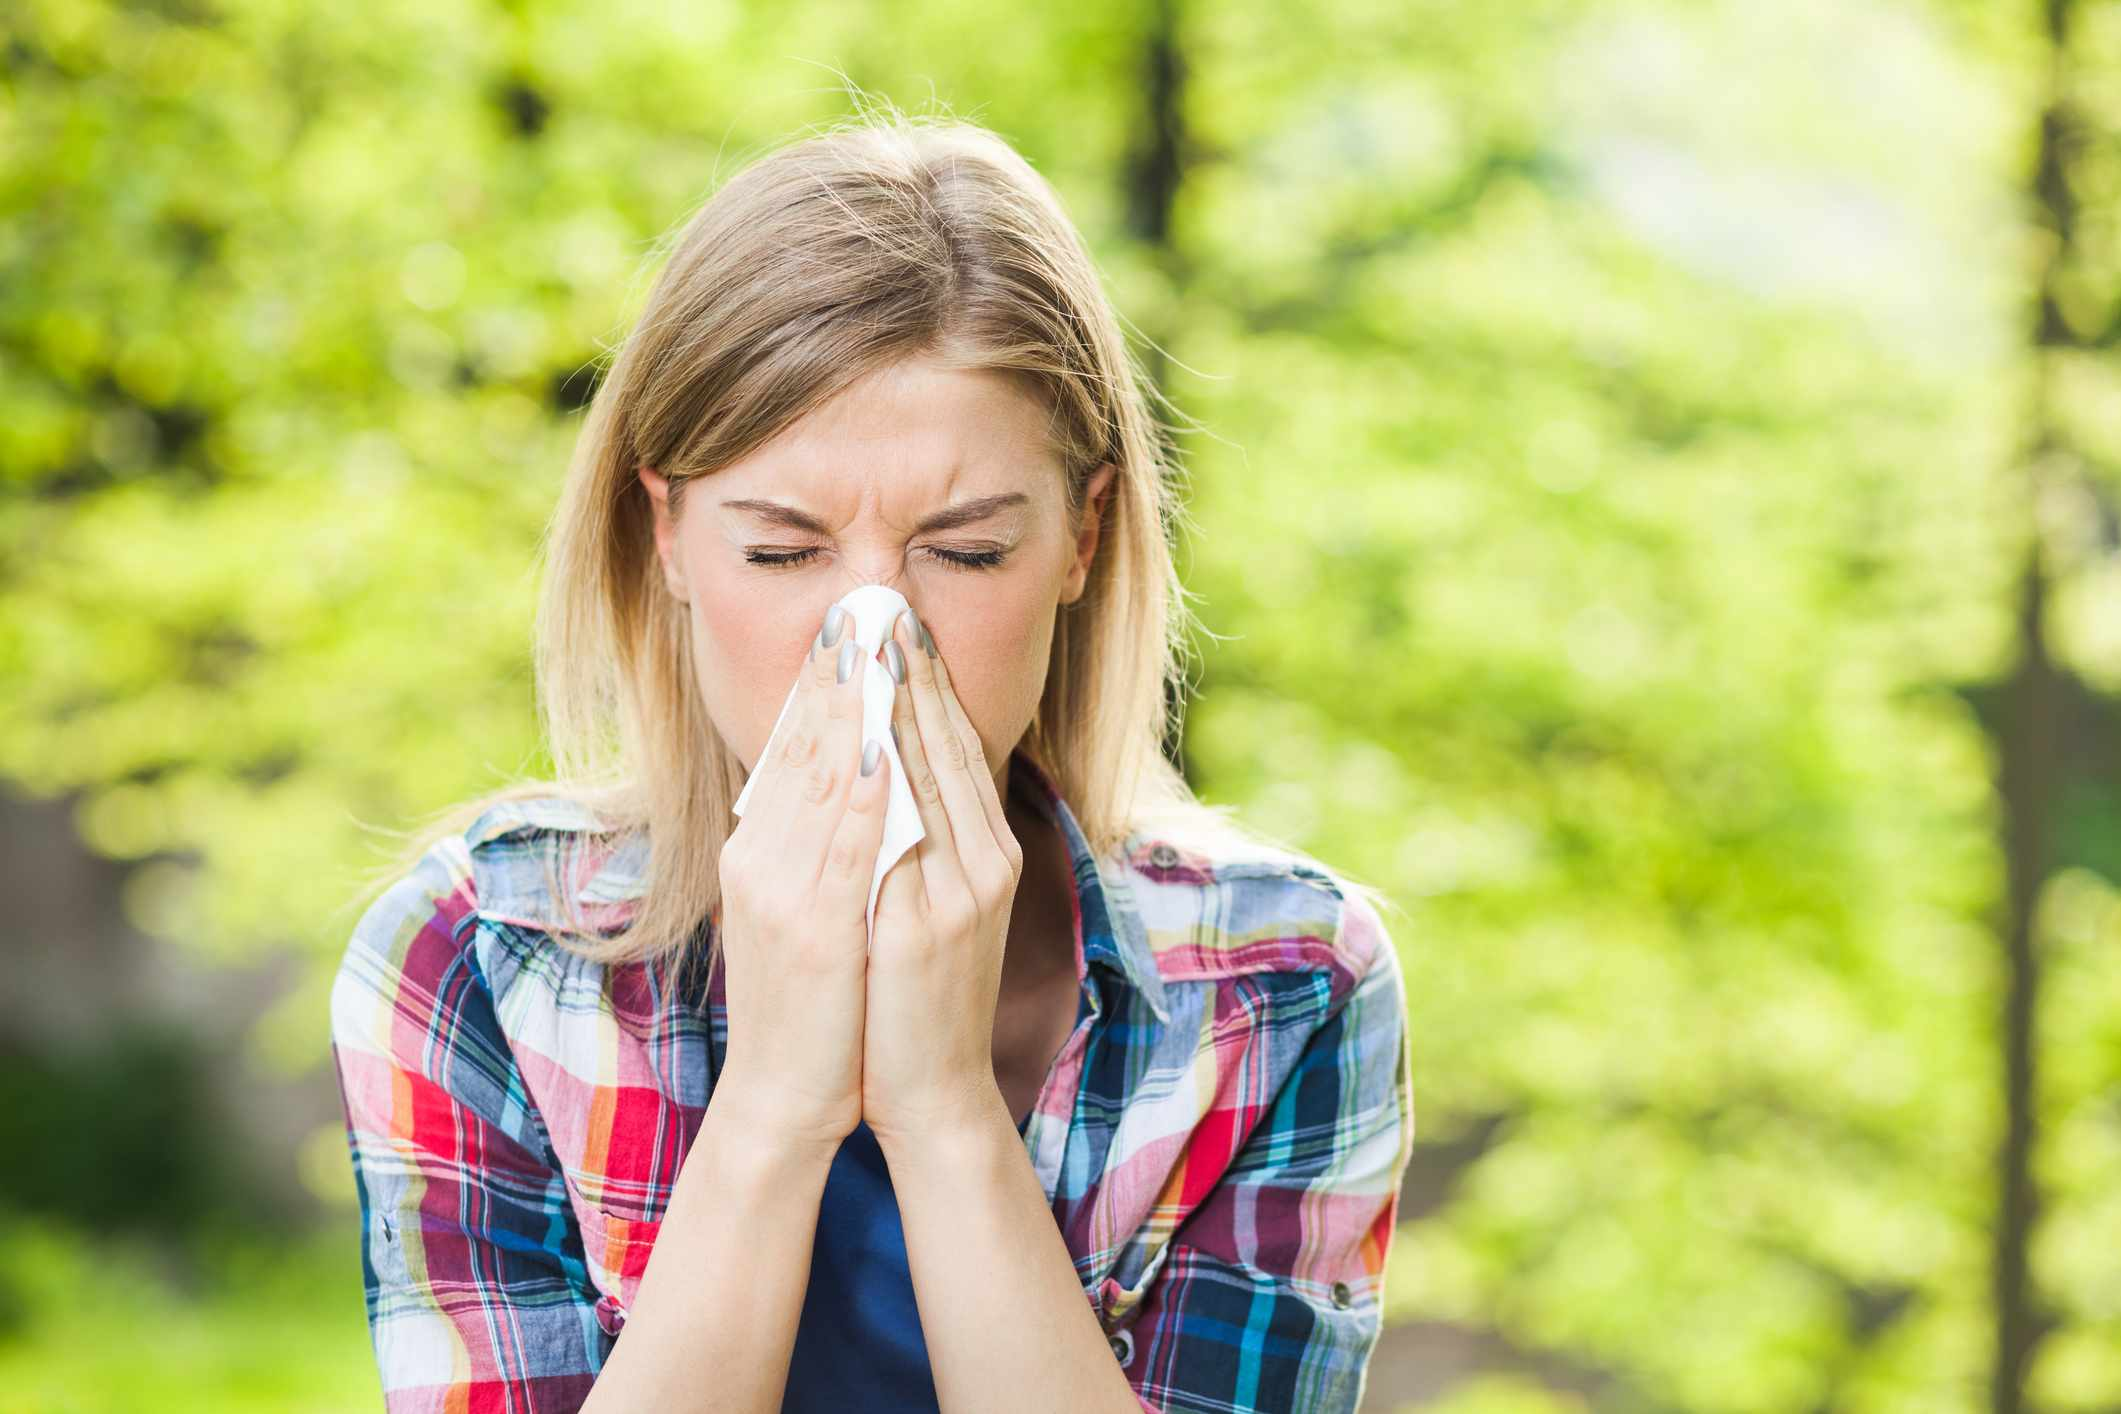 Why can looking at a bright light make you sneeze? © Getty Images